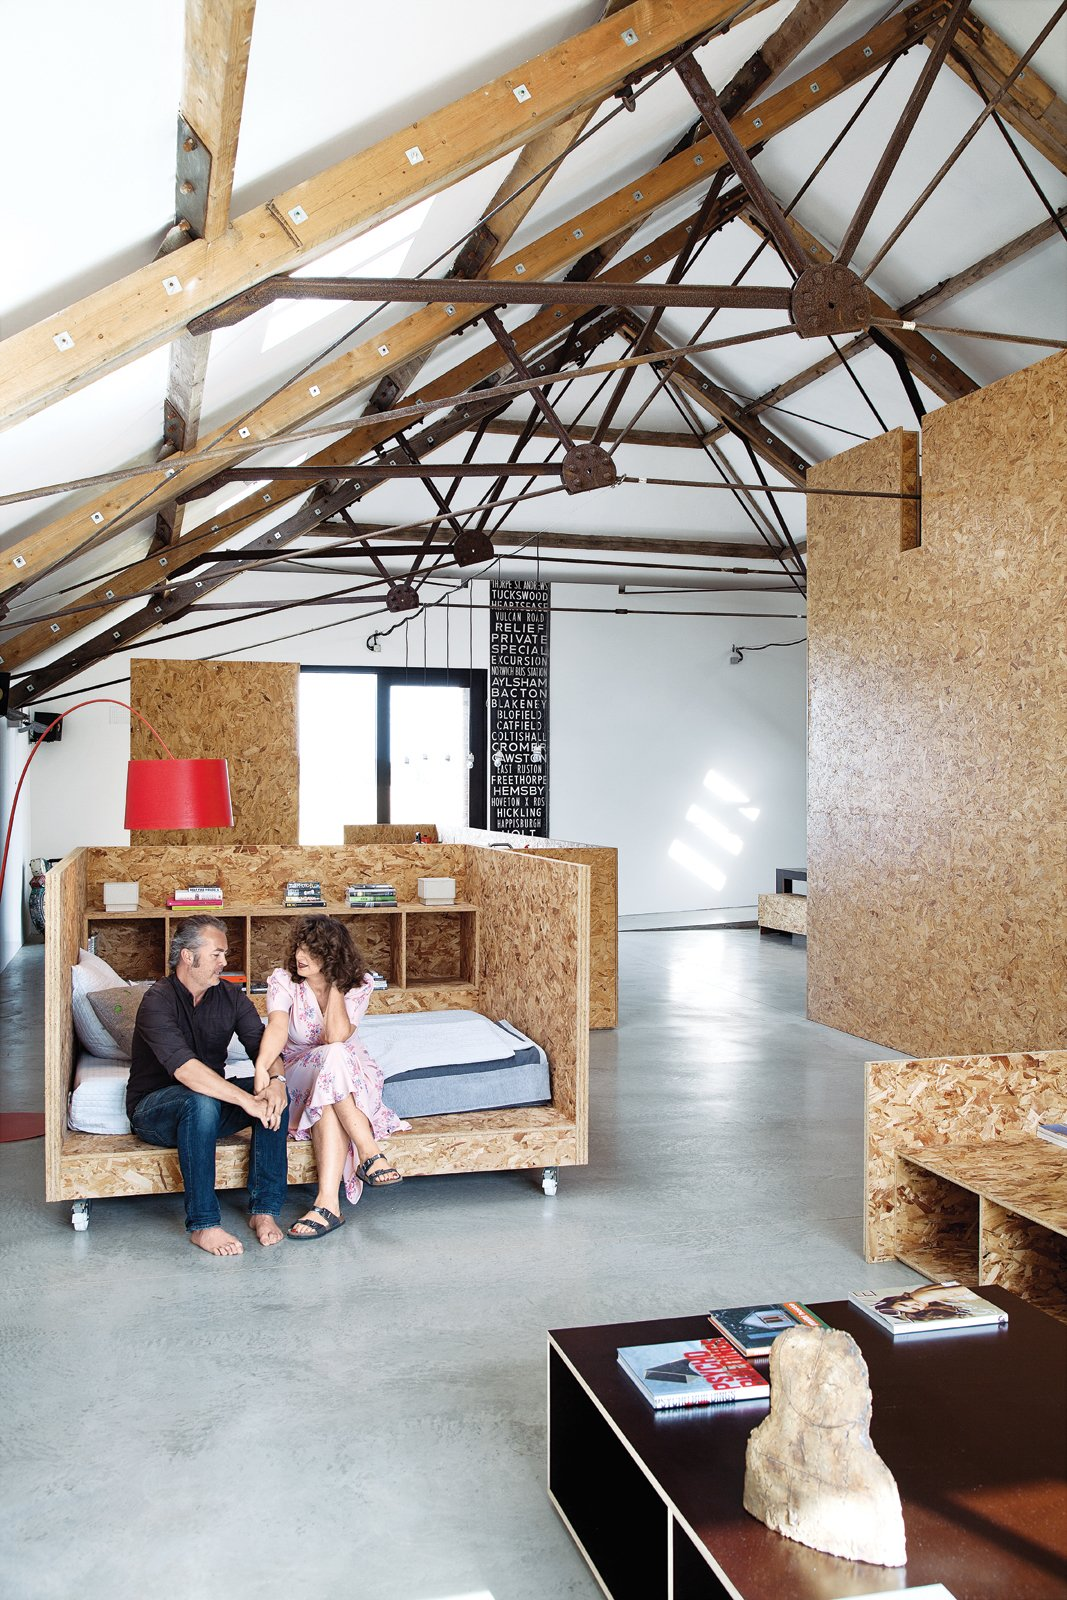 Bedroom and Bed Mobile Nap  Turner made much of the barn's furniture from OSB, but the mobile daybed   on wheels is a standout piece and allows the user to catch the sun or shade as the mood strikes.  Best Photos from Take Two: 7 Adaptive Reuse Projects We Love